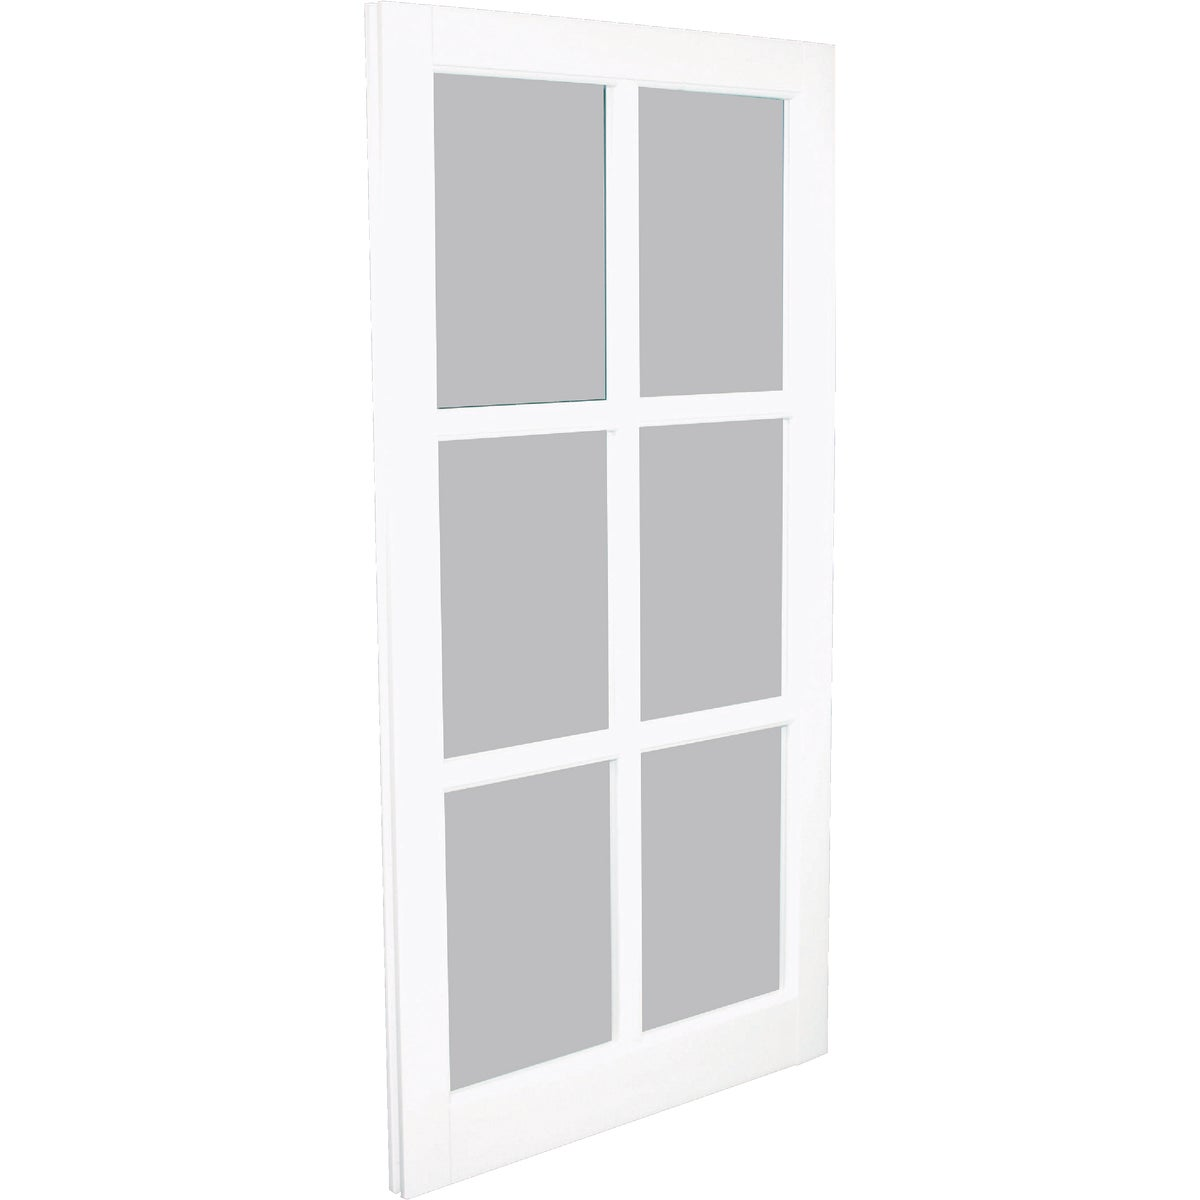 22X41 WHT PVC BARN SASH - BS2241W by Northview Window